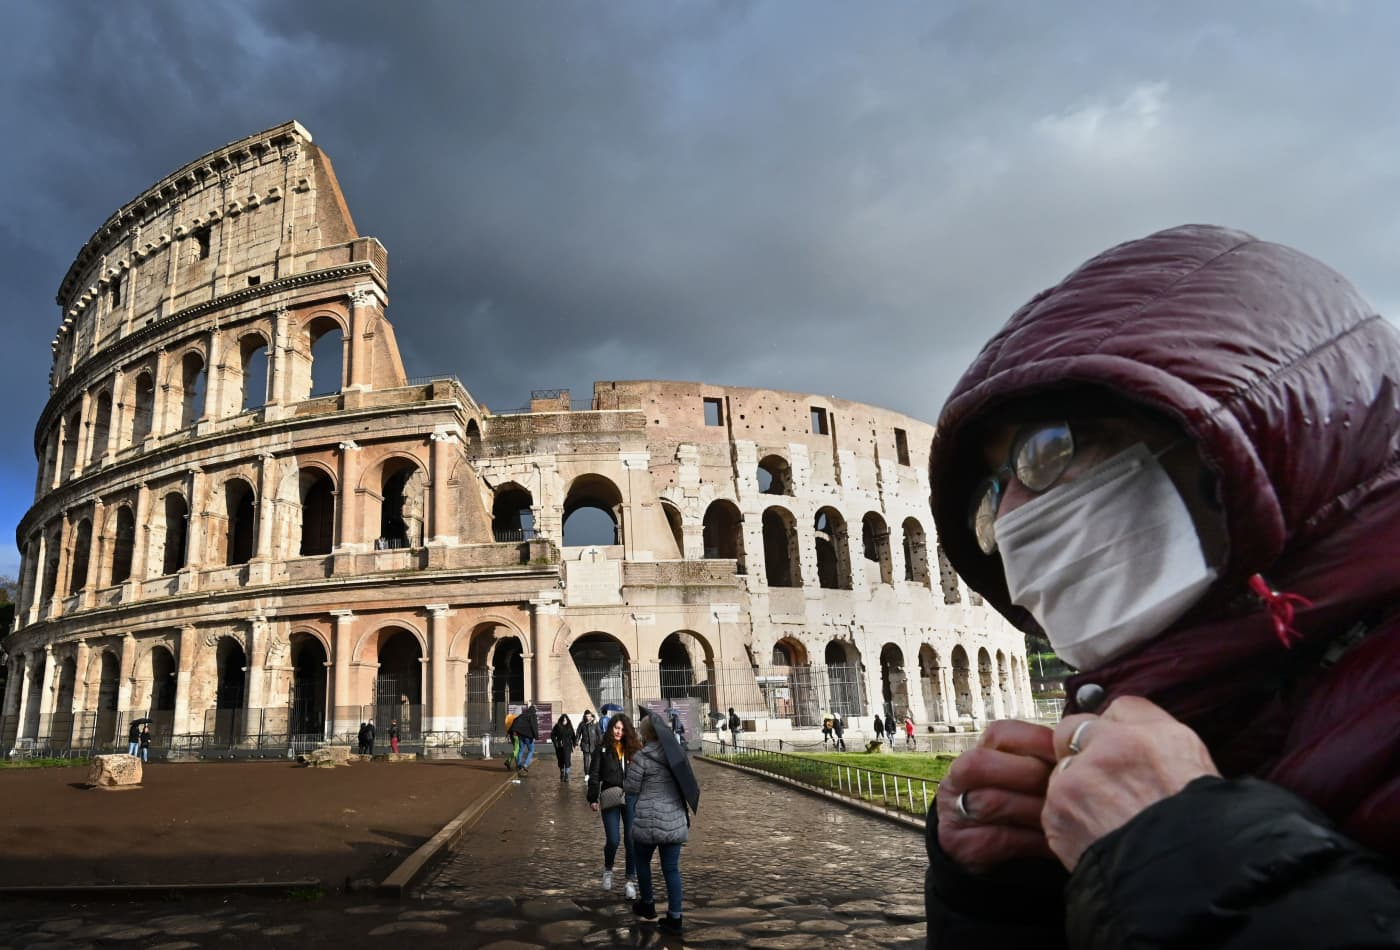 Italy extends its quarantine to the entire country; PM asks residents to stay at home